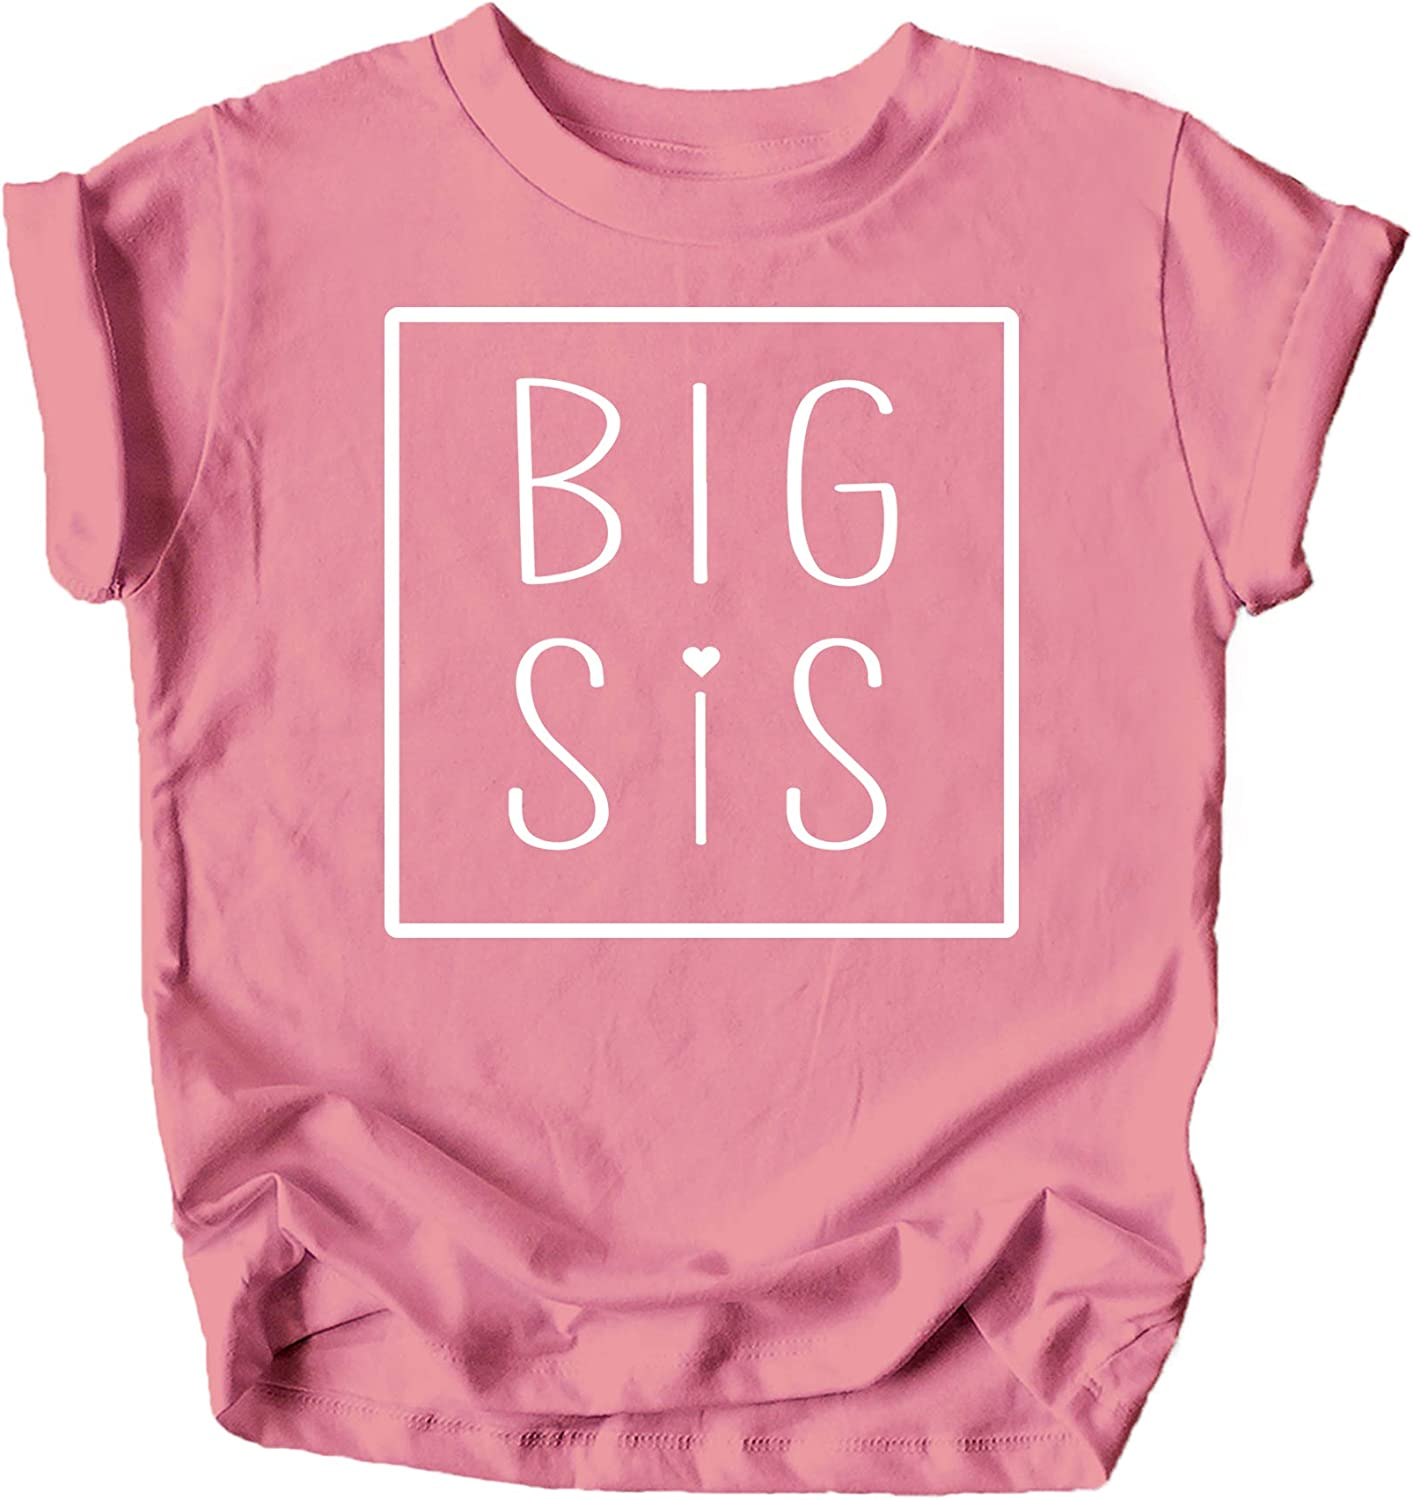 Olive Loves Apple Big Sis Square Sibling Reveal Announcement Shirt for Baby and Toddler Girls Sibling Outfits